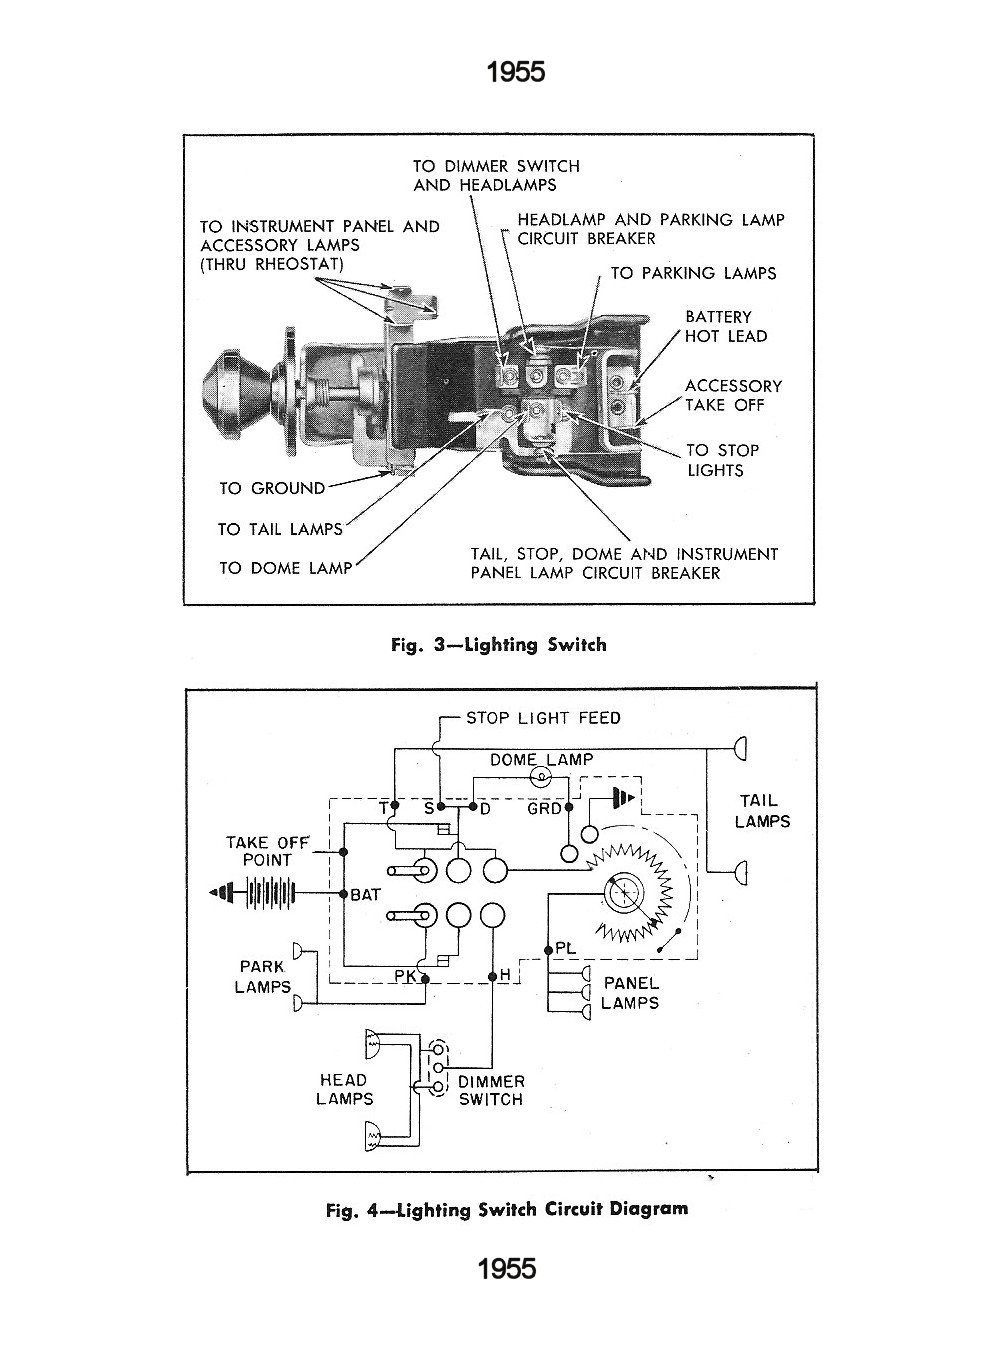 Chevy Headlight Wiring Diagram Site 2002 Chevrolet Impala Diagrams 1955 Lighting Switch Circuit